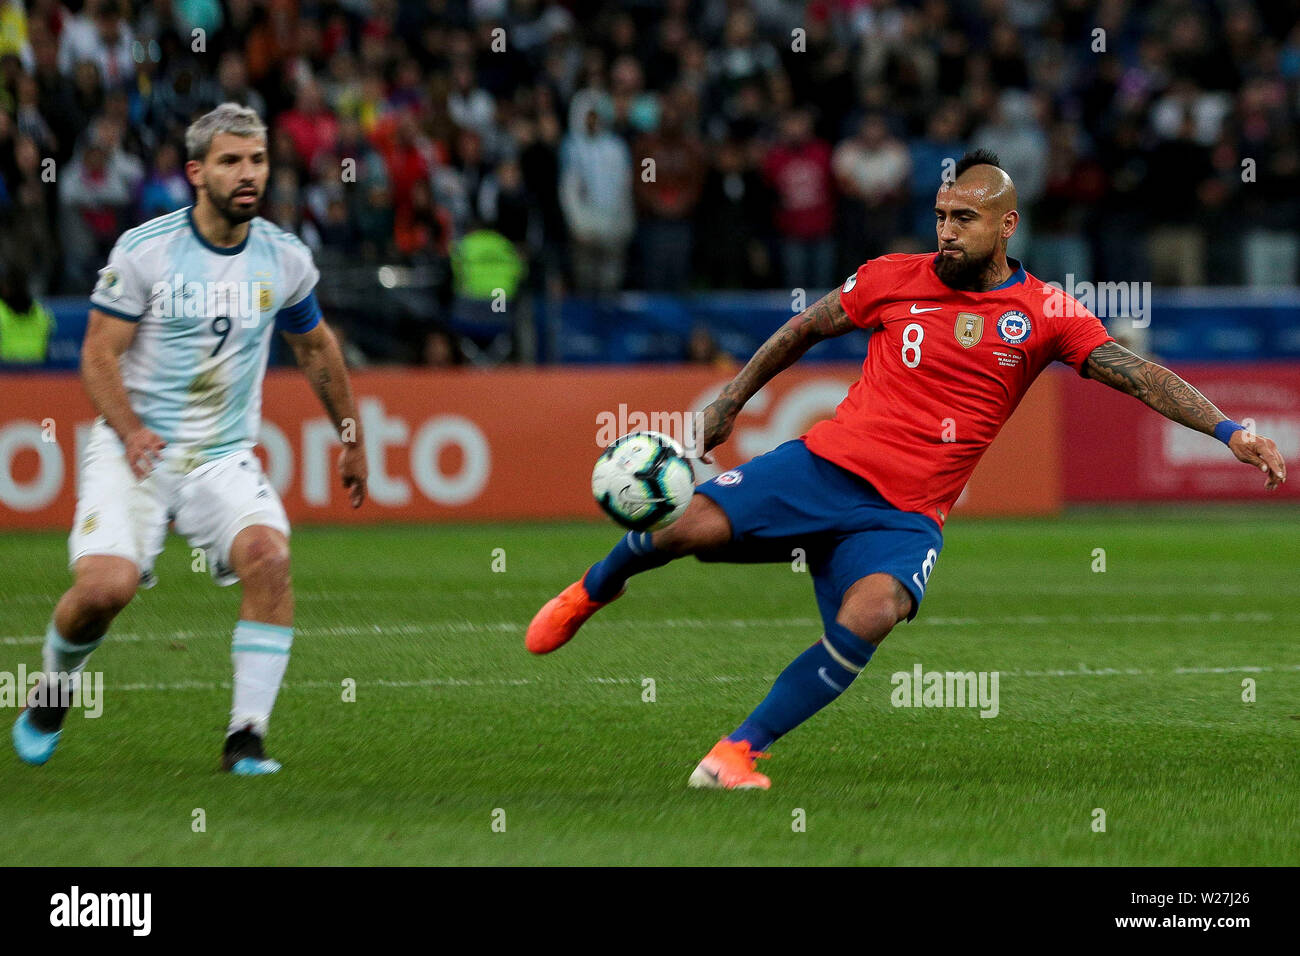 6th July 2019, Arena Corinthians Stadium, Sao Paulo, Brazil; Copa America international football, 3rd-4th playoff final, Argentina versus Chile; Arturo Vidal of Chile gets his shot towards goal in the 2nd half - Stock Image